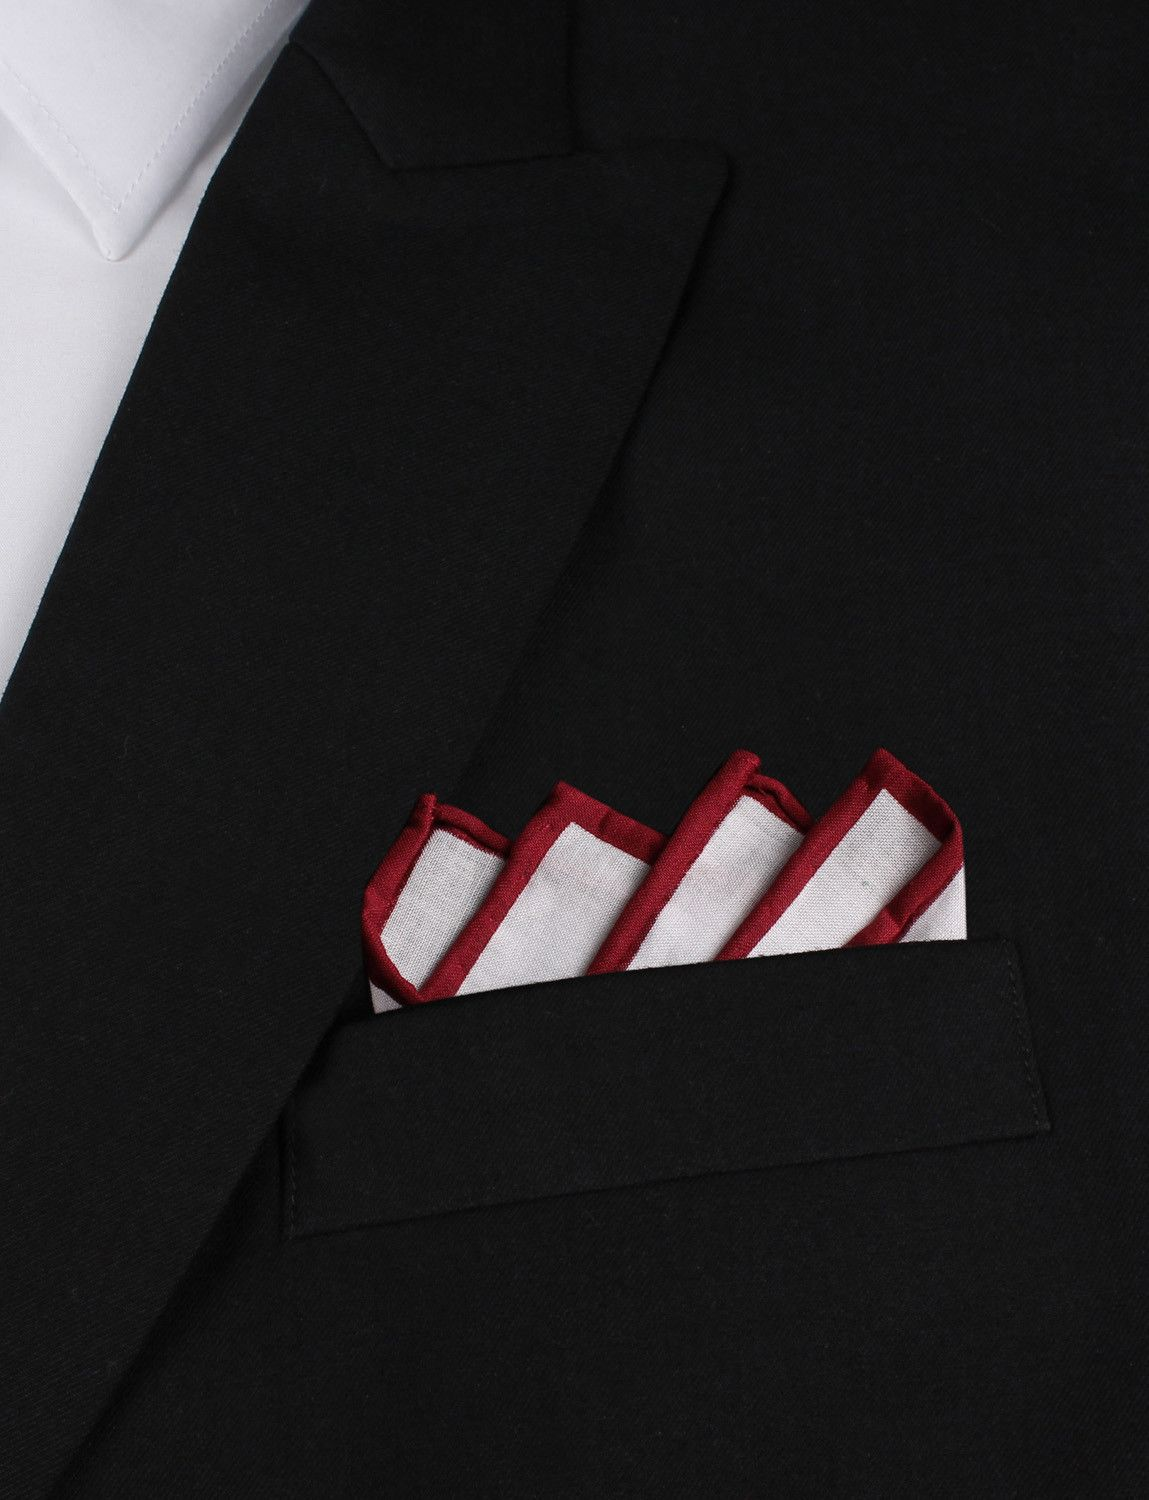 Cotton Mens Pocket Square-Solid White Cotton Pocket Square with Maroon Border